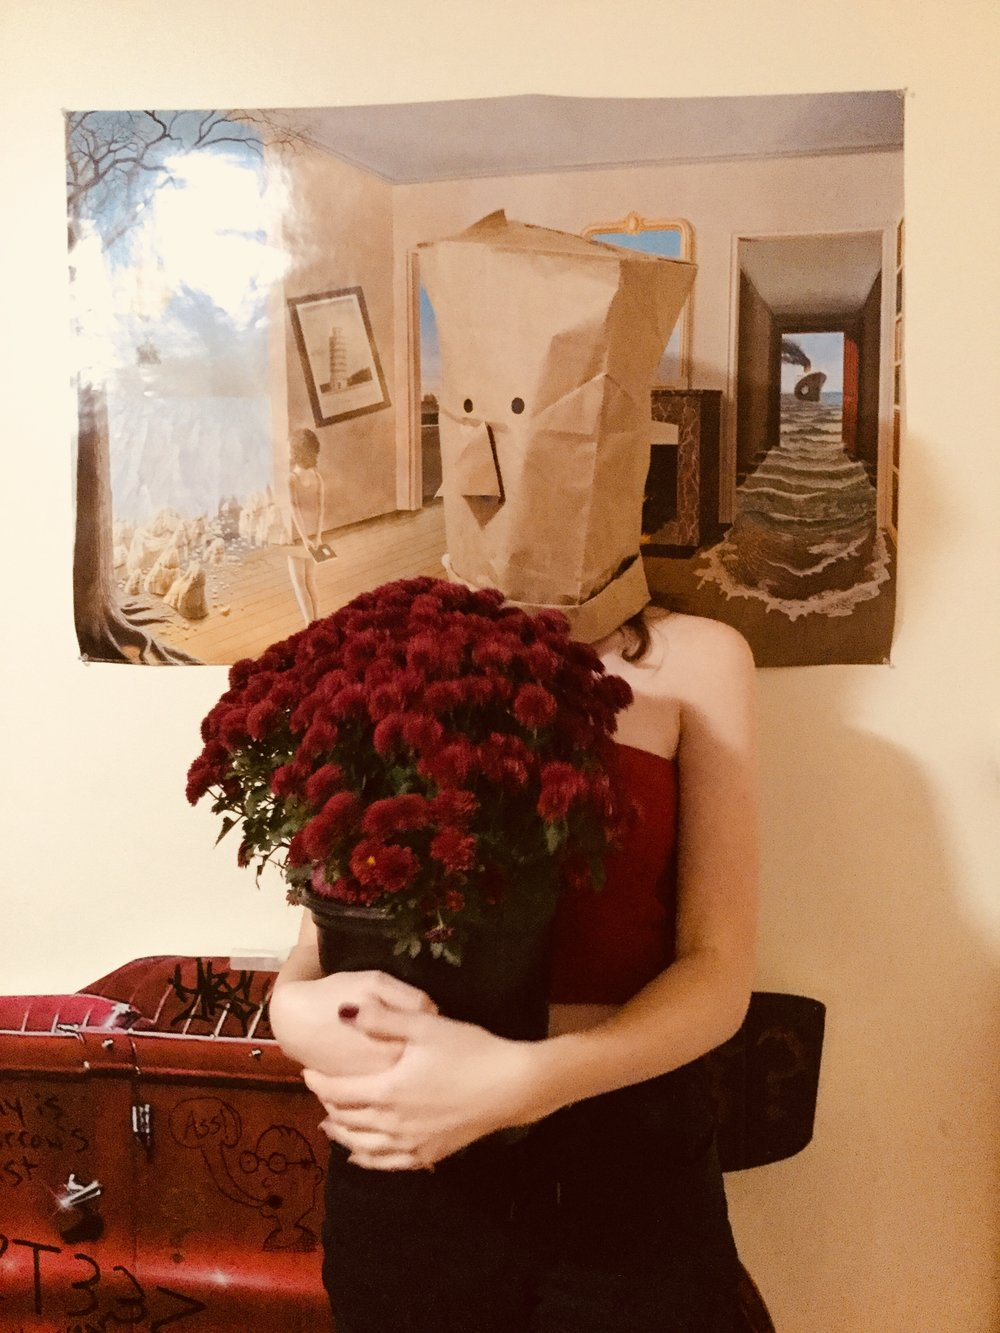 This week we finished our second newsletter, and Rachael is designing it as we speak! This photo taken by Addie Thibeault represents a new featured section that will appear in subsequent letters where she documents the fashion choices of students wearing bags on their heads.